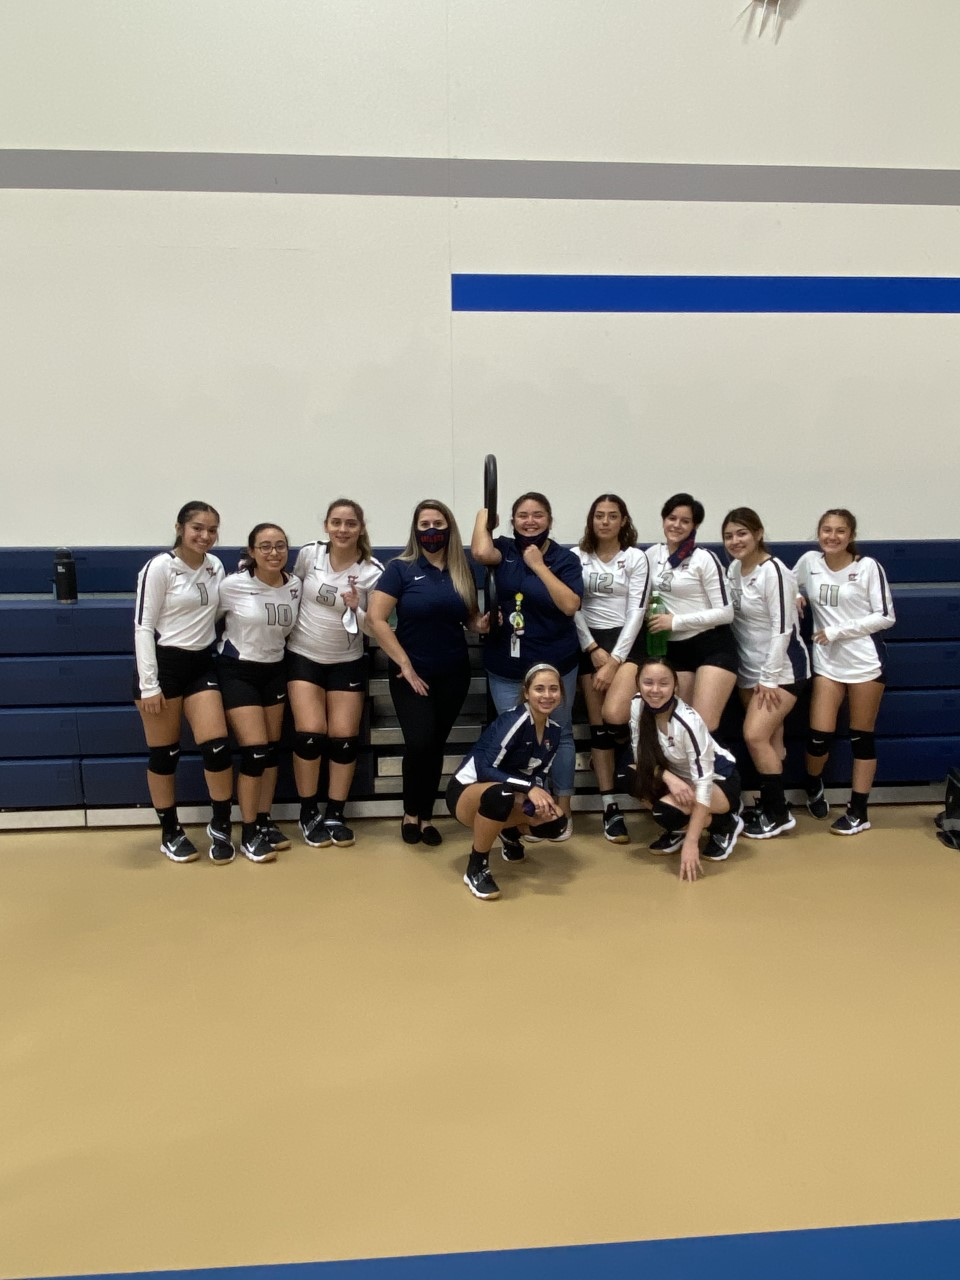 Lady Knights get the win against Inspired Vision!